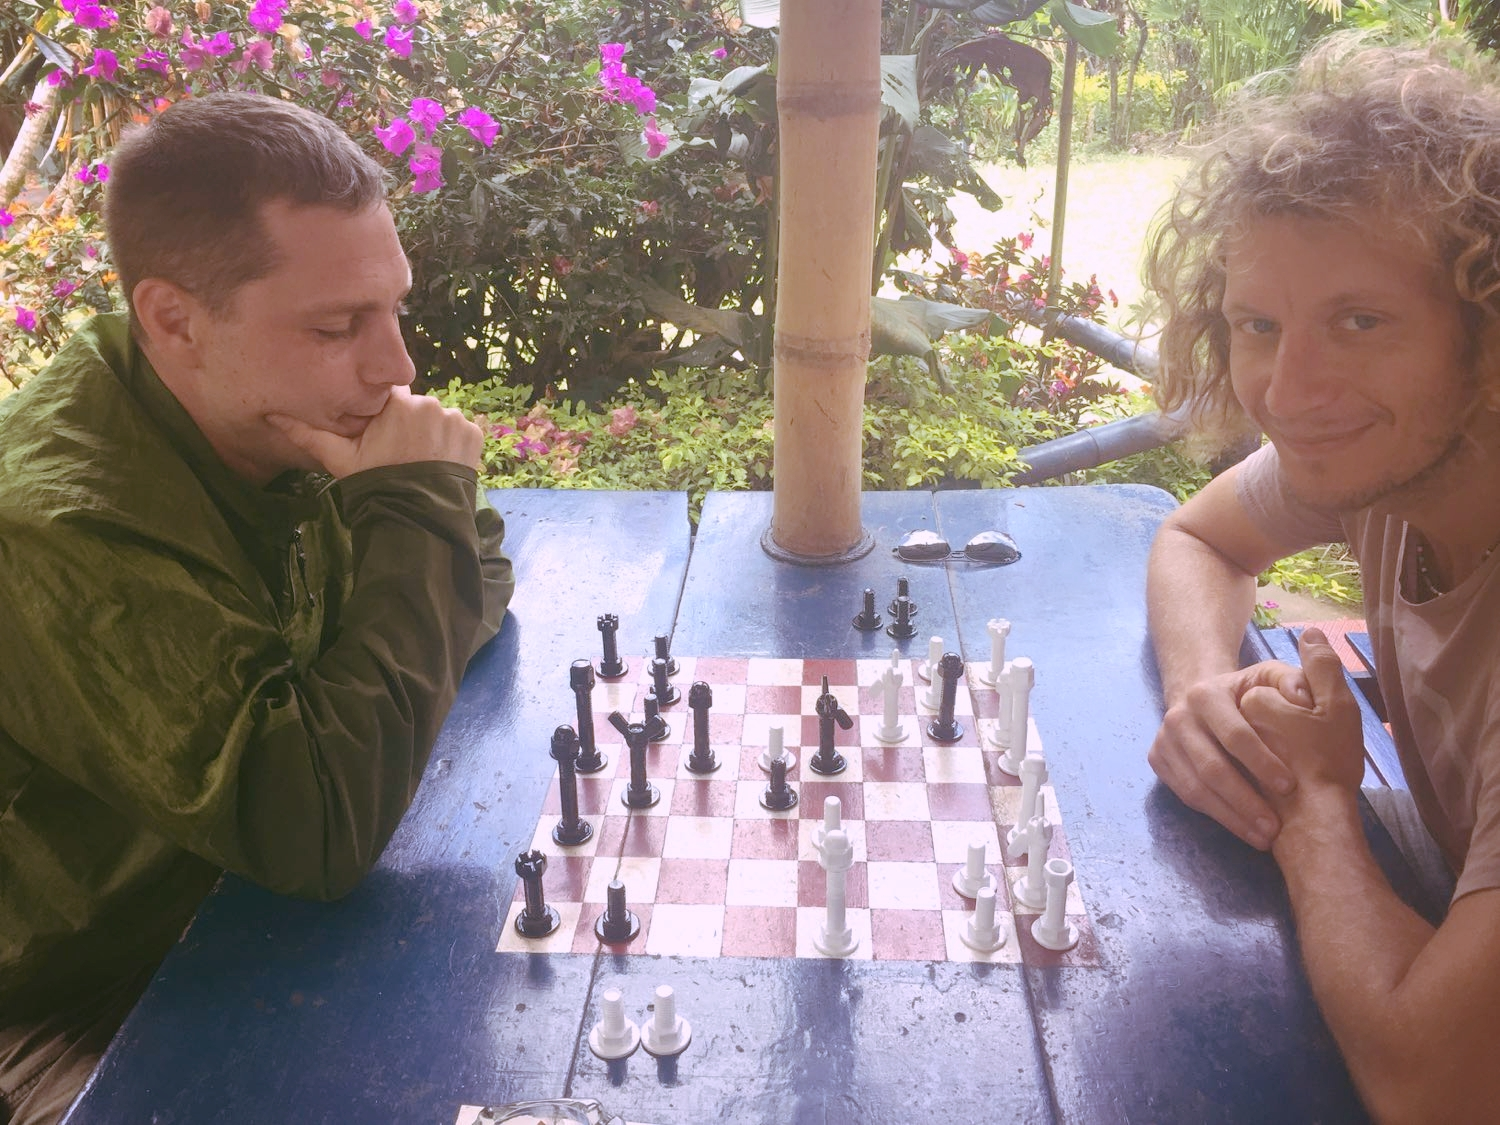 Playing chess with Alex, notice the chess pieces are made of nuts and bolts. Matty painted them and brought them back to life